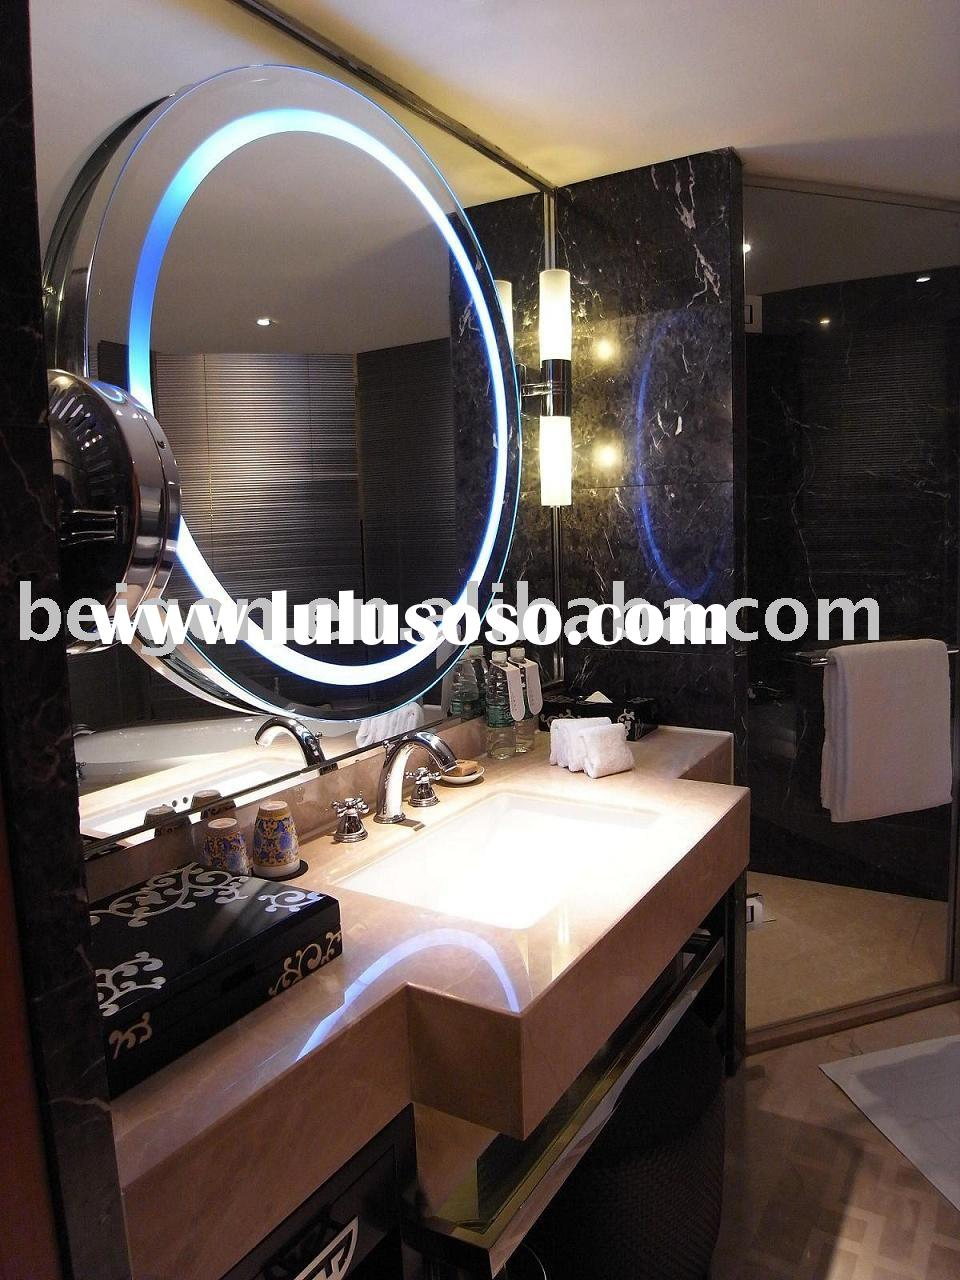 Bathroom illuminated mirror, backlit mirror(CE,UL approved lights and defogger)